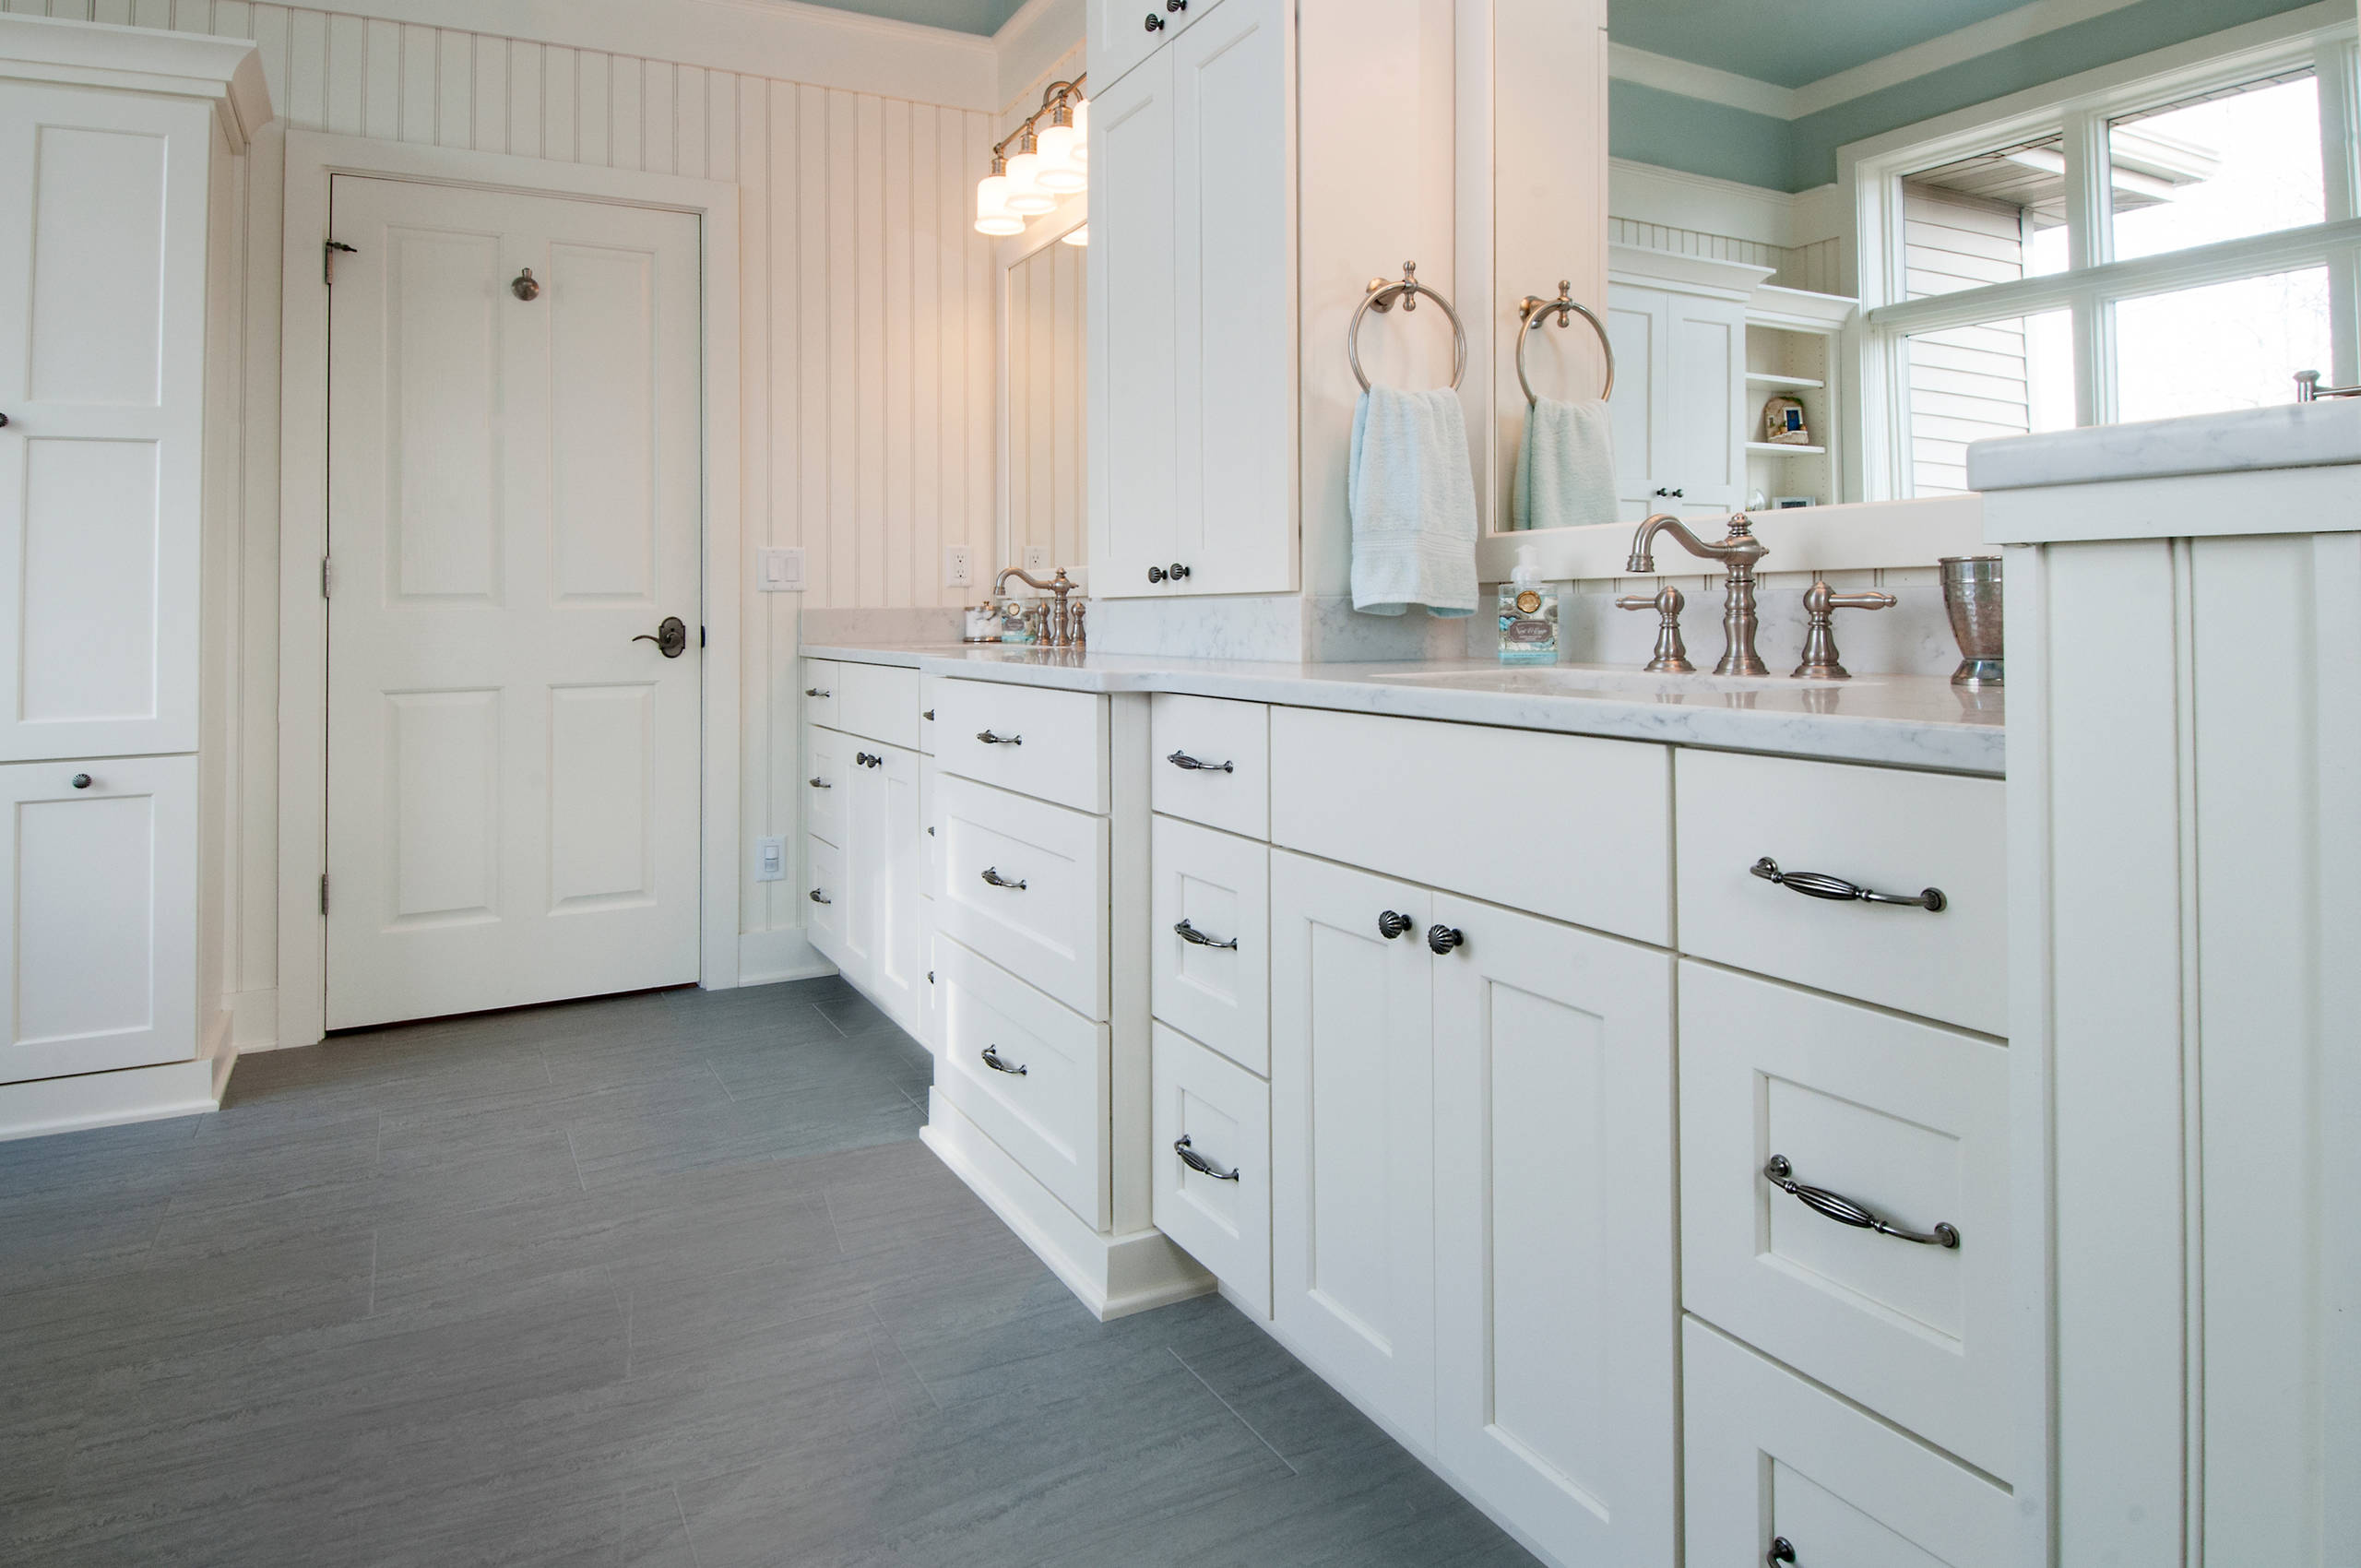 Bathrom Painted Cabinets